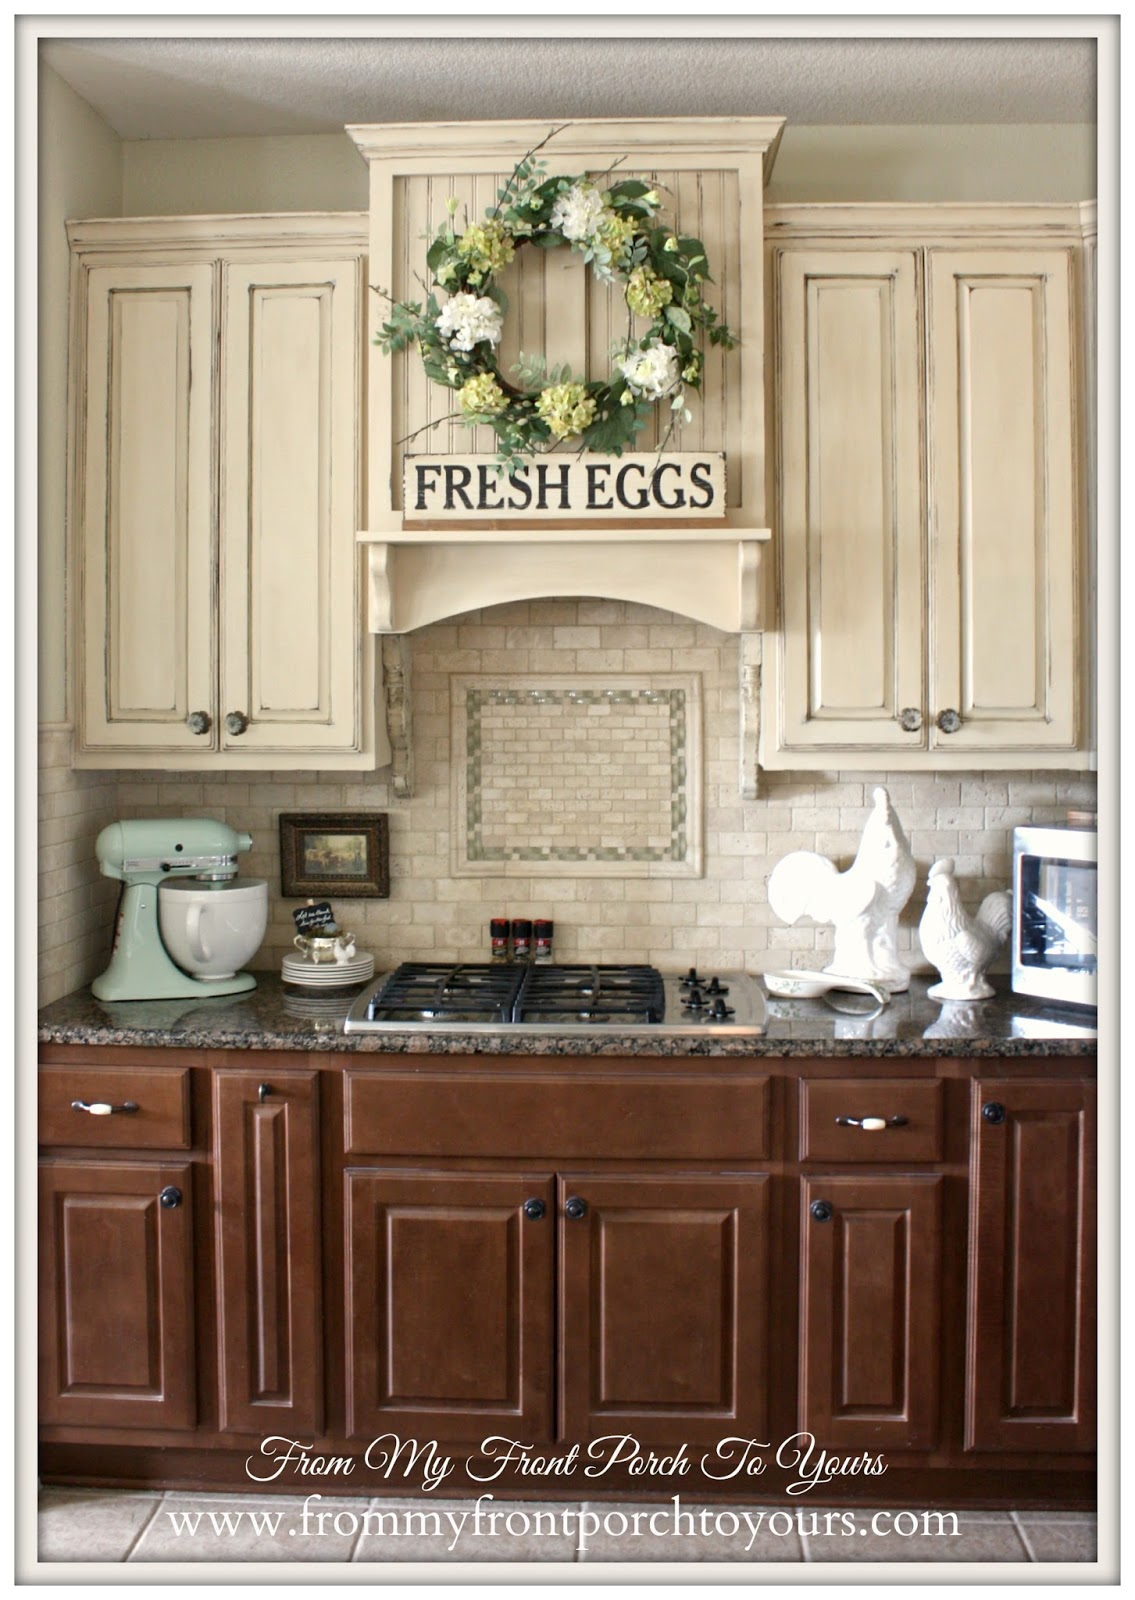 Farm Kitchen Cabinets From My Front Porch To Yours French Farmhouse Kitchen Sources